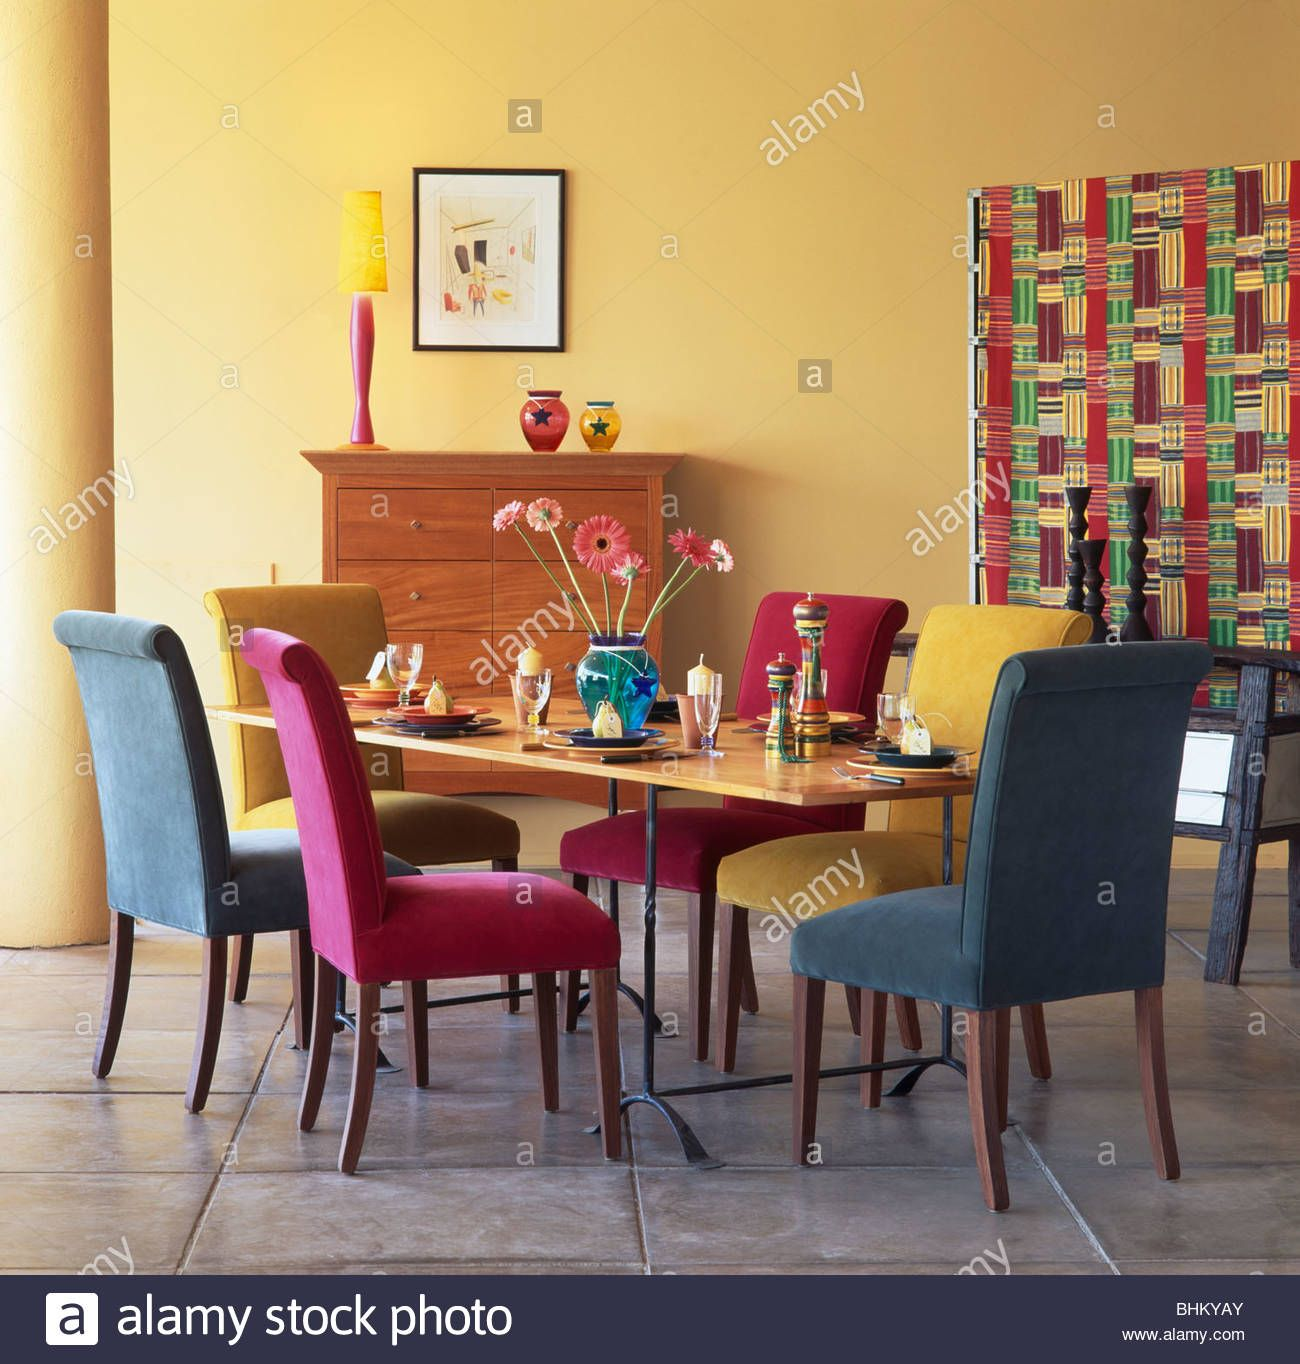 Dining Room Sets Multi Colored Chairs Dining Room Colors Colored Dining Chairs Dining Room Design